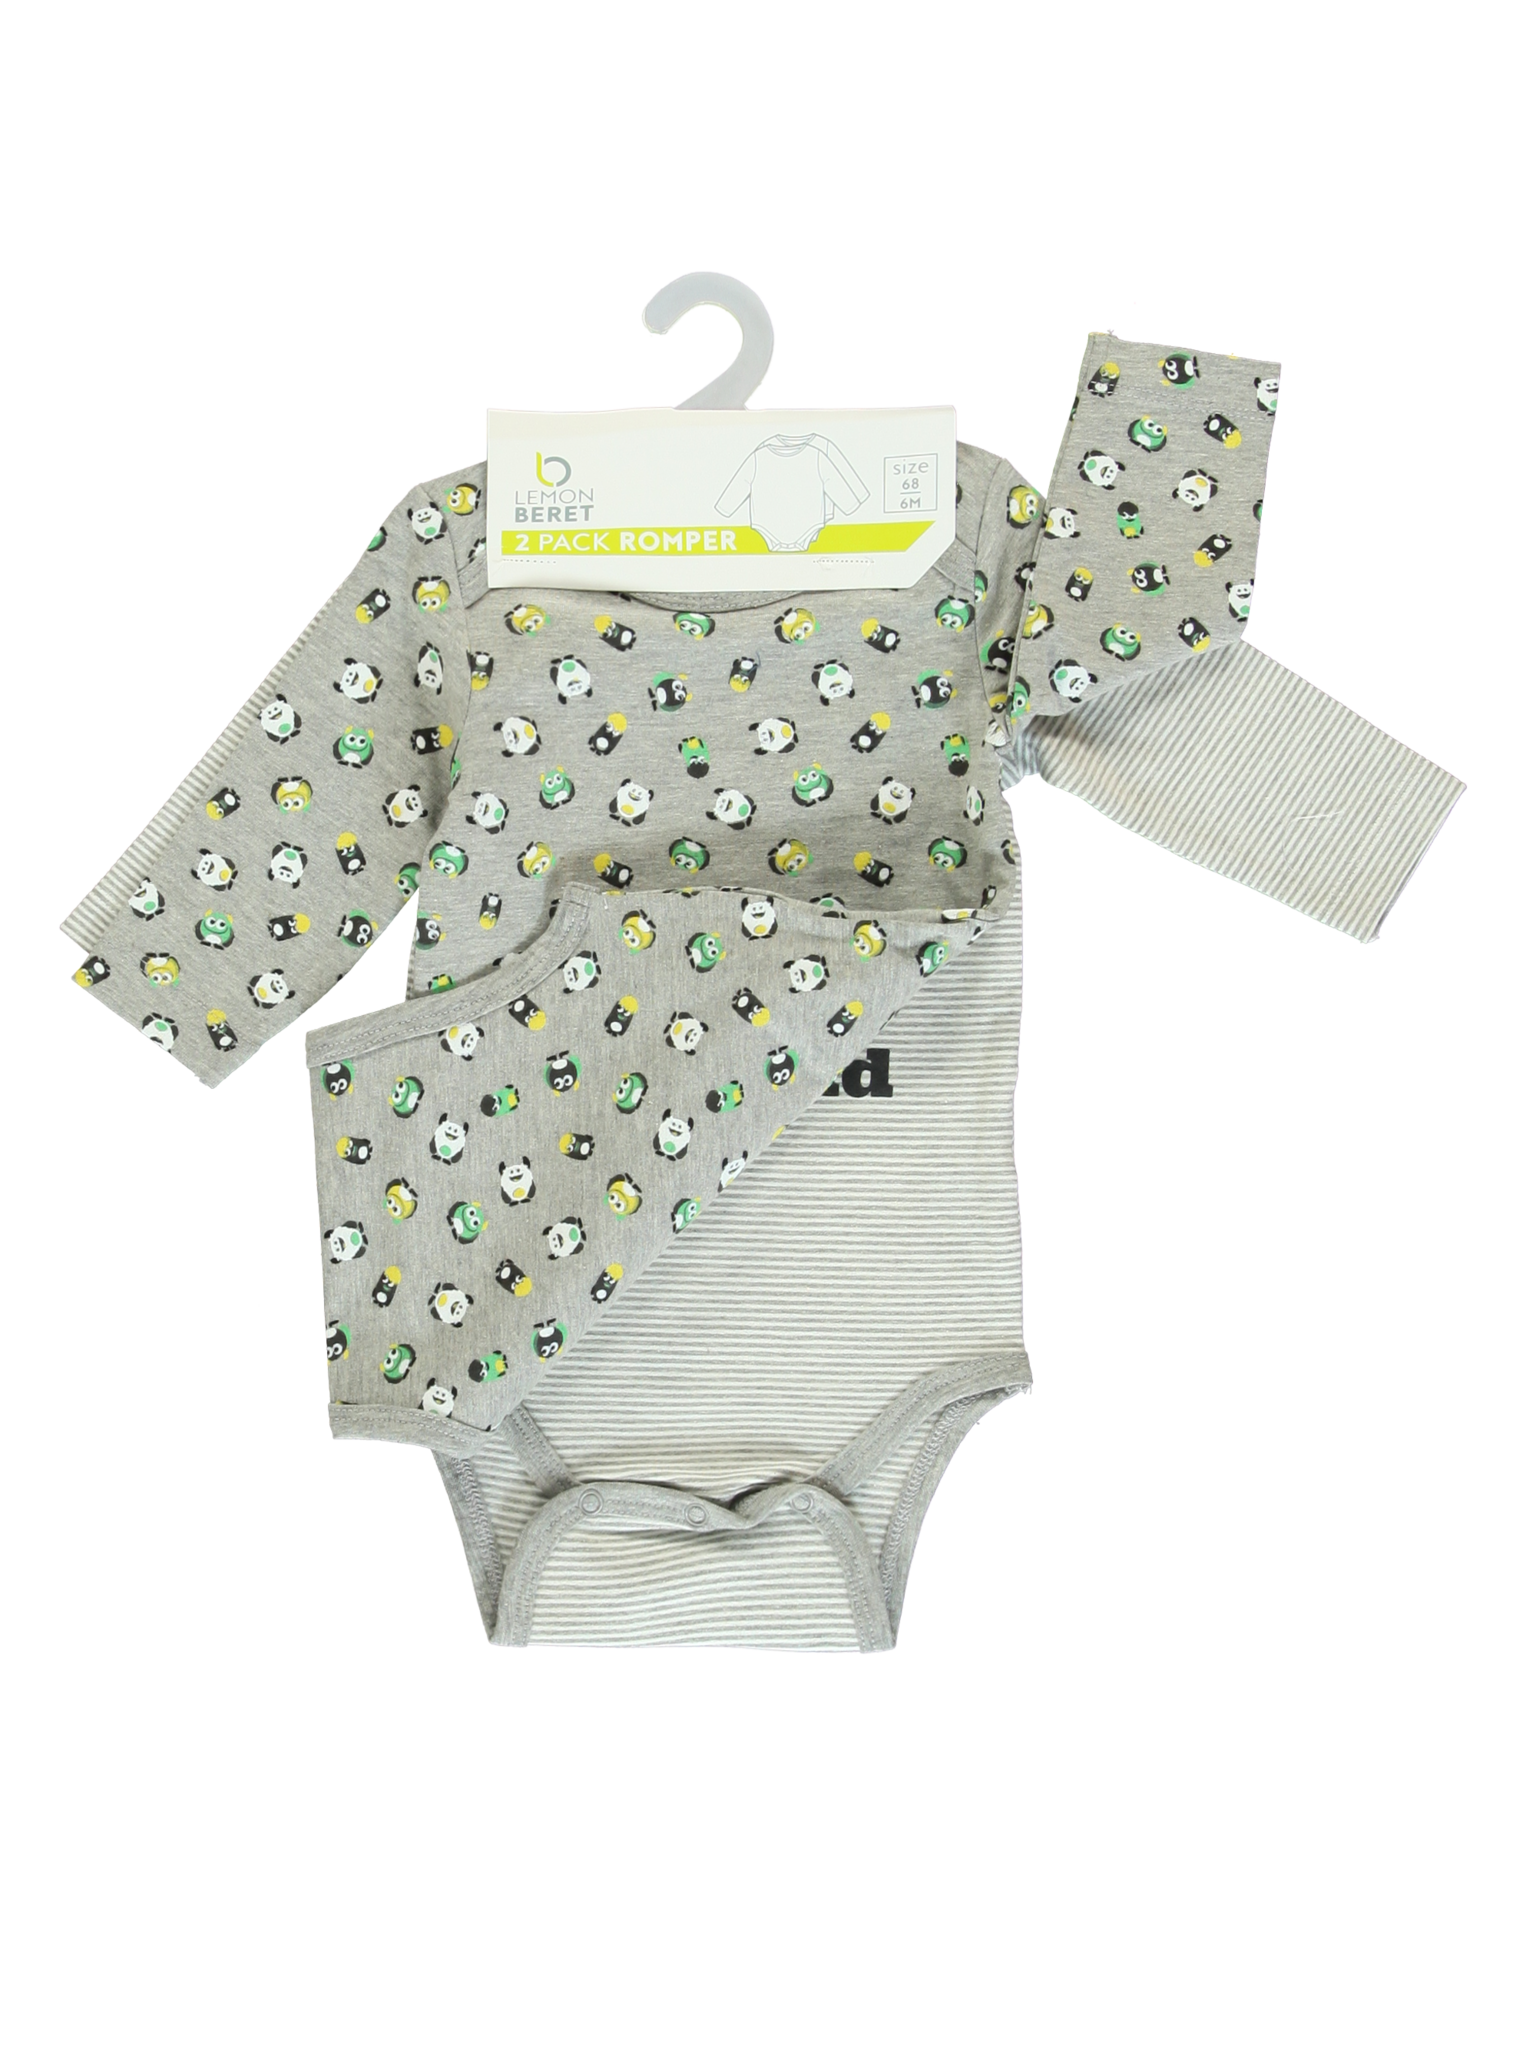 All Brands | Winterproducts Baby | Romper | 12 pcs/box